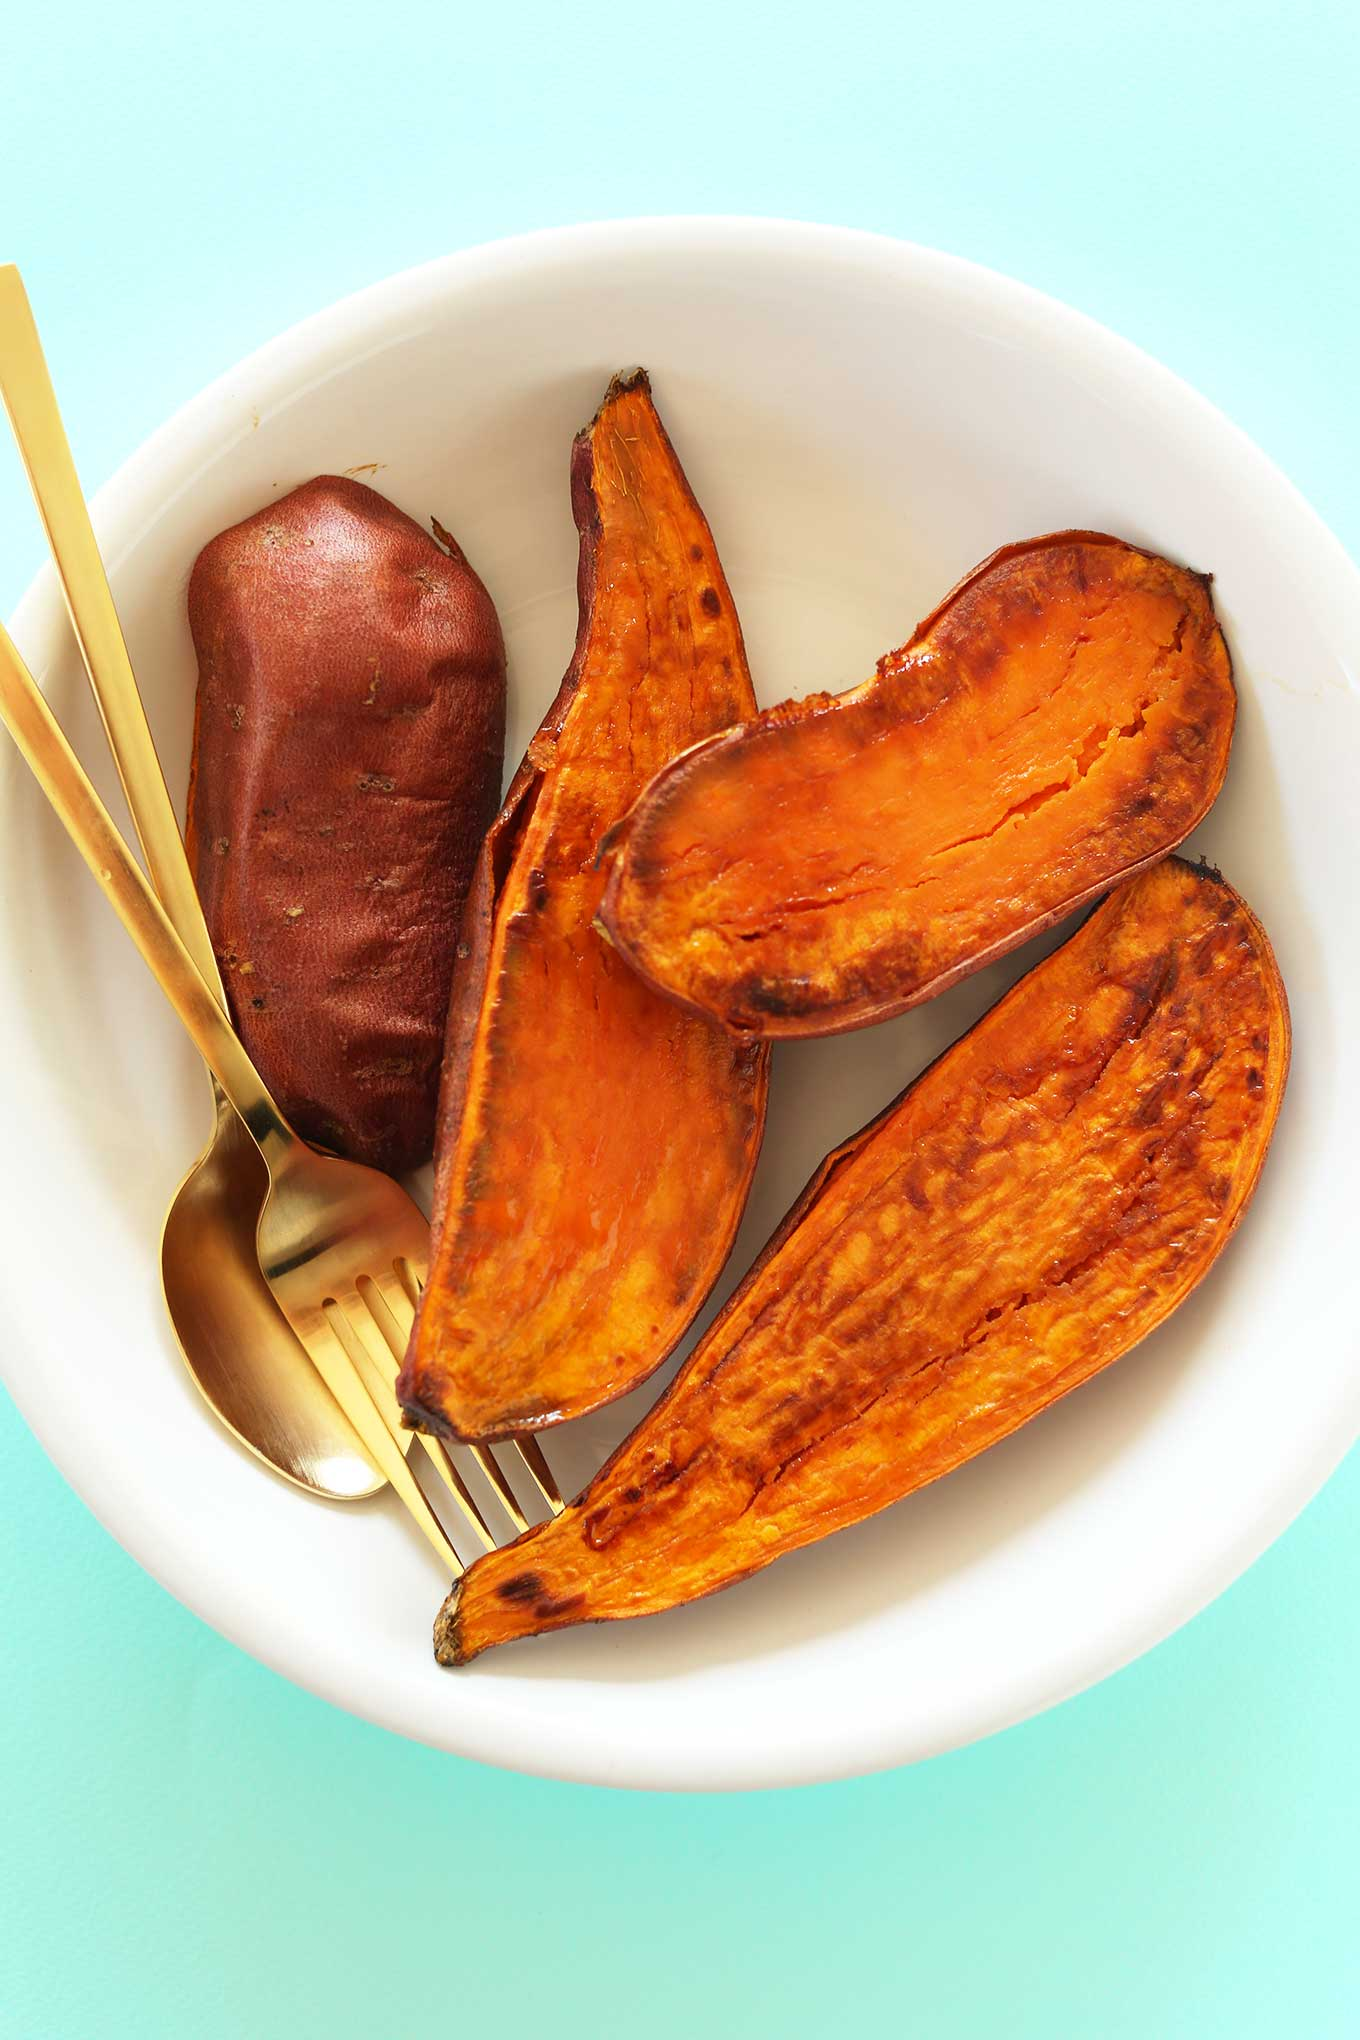 Bowl of roasted sweet potatoes for a delicious gluten-free vegan Sweet Potato Smoothie